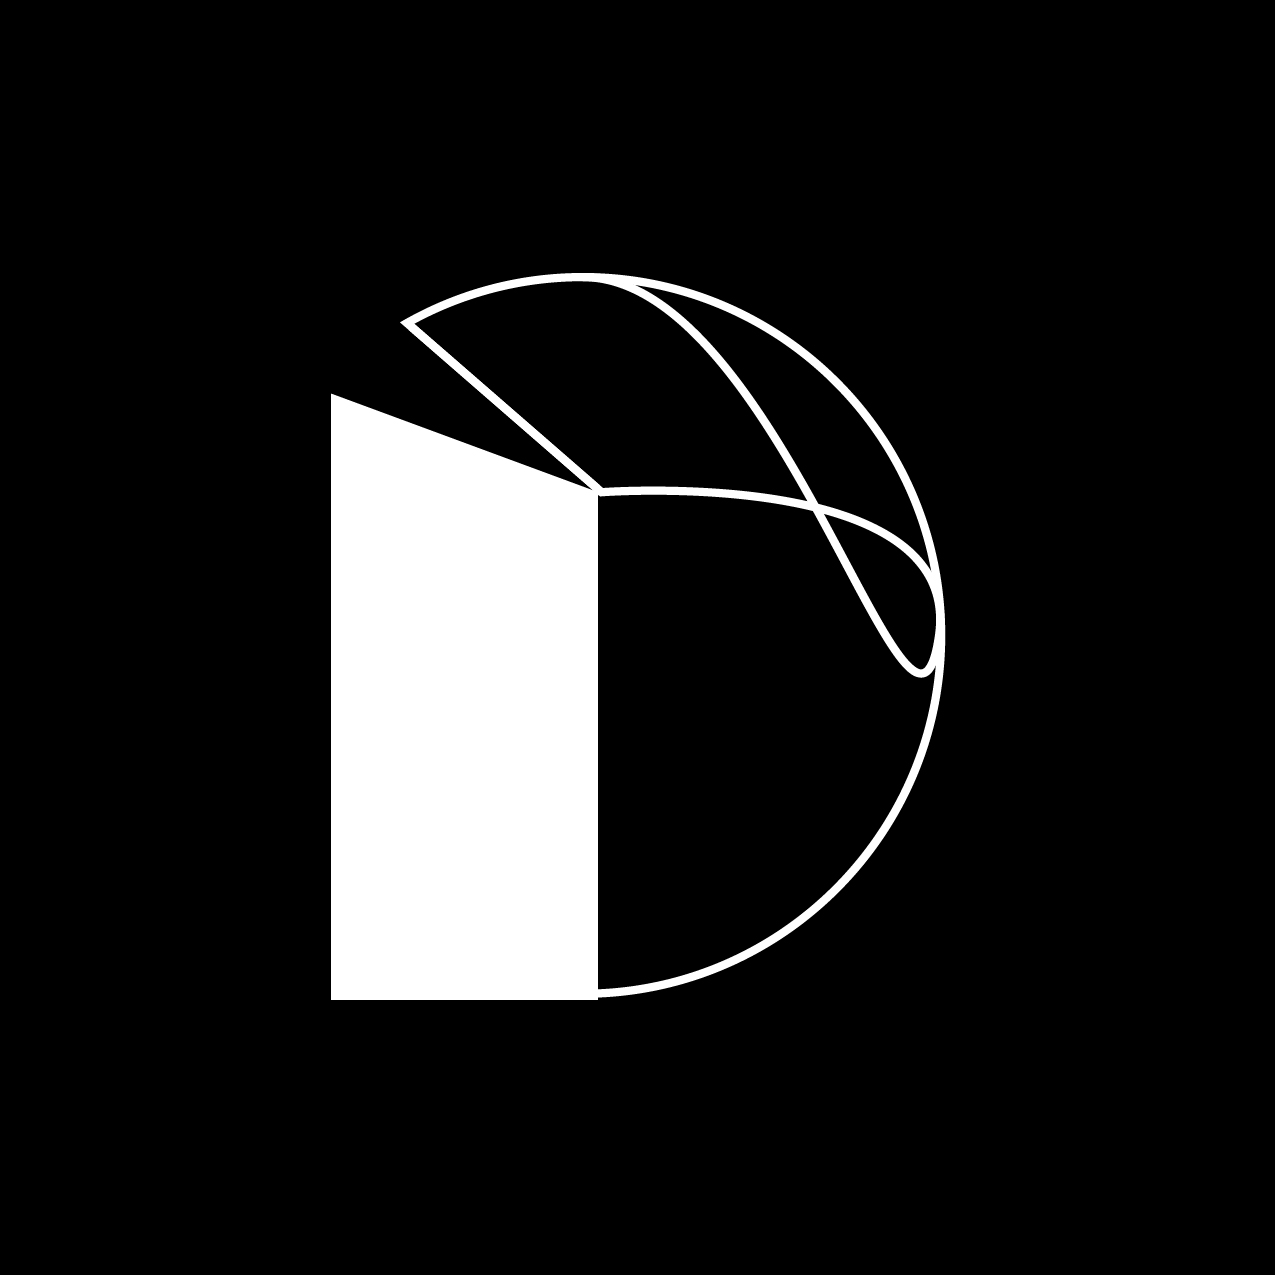 Letter D2 design by Furia